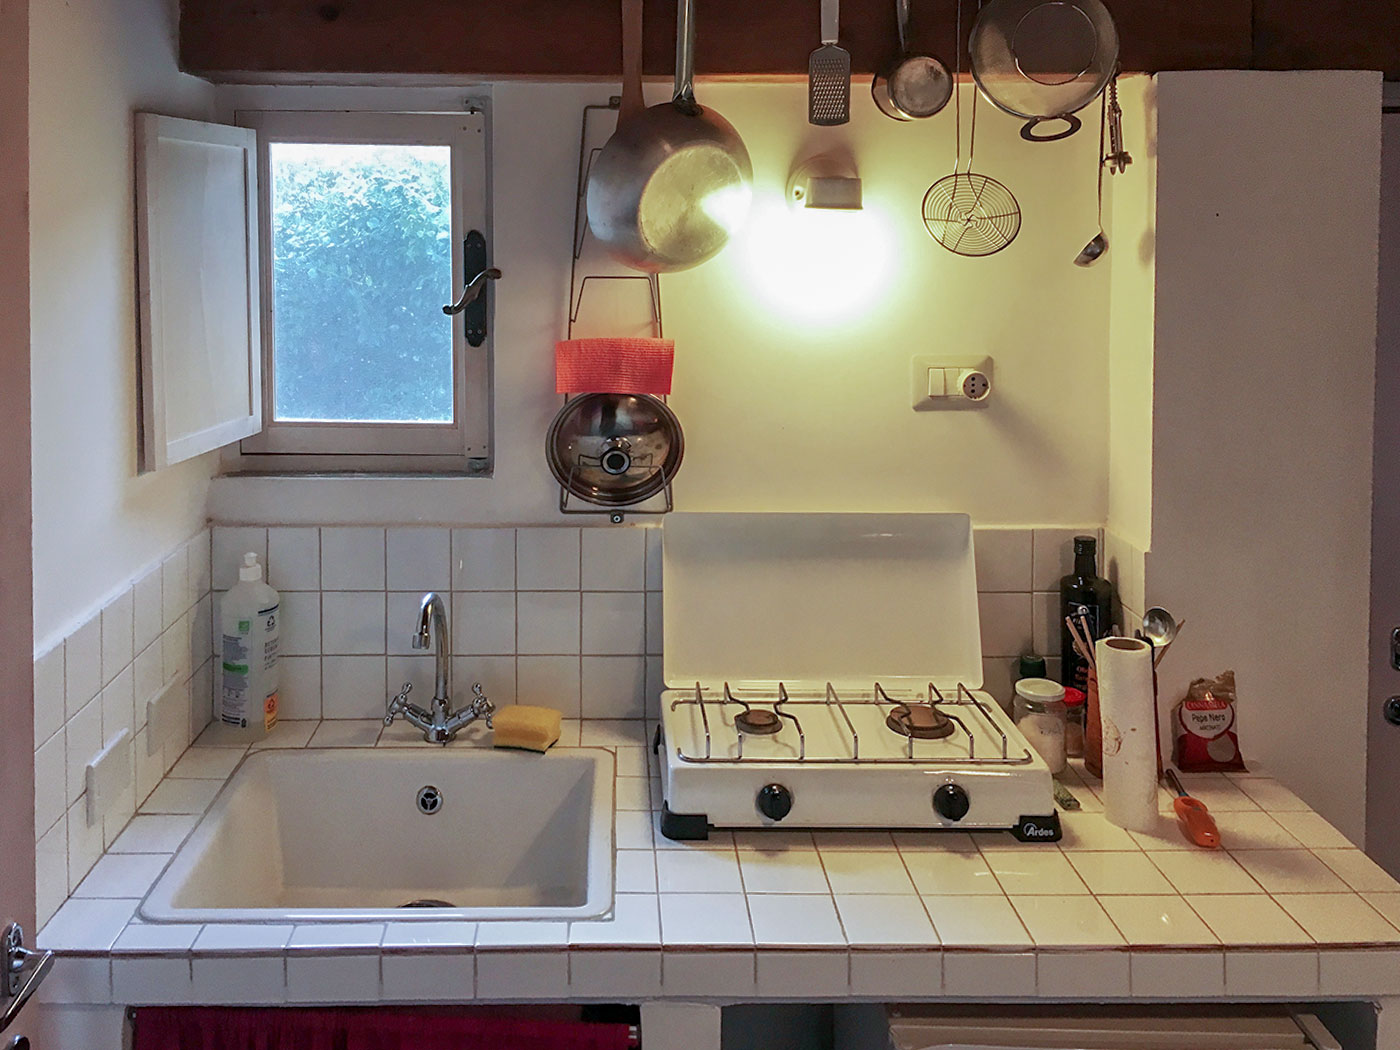 Kitchenette and sink